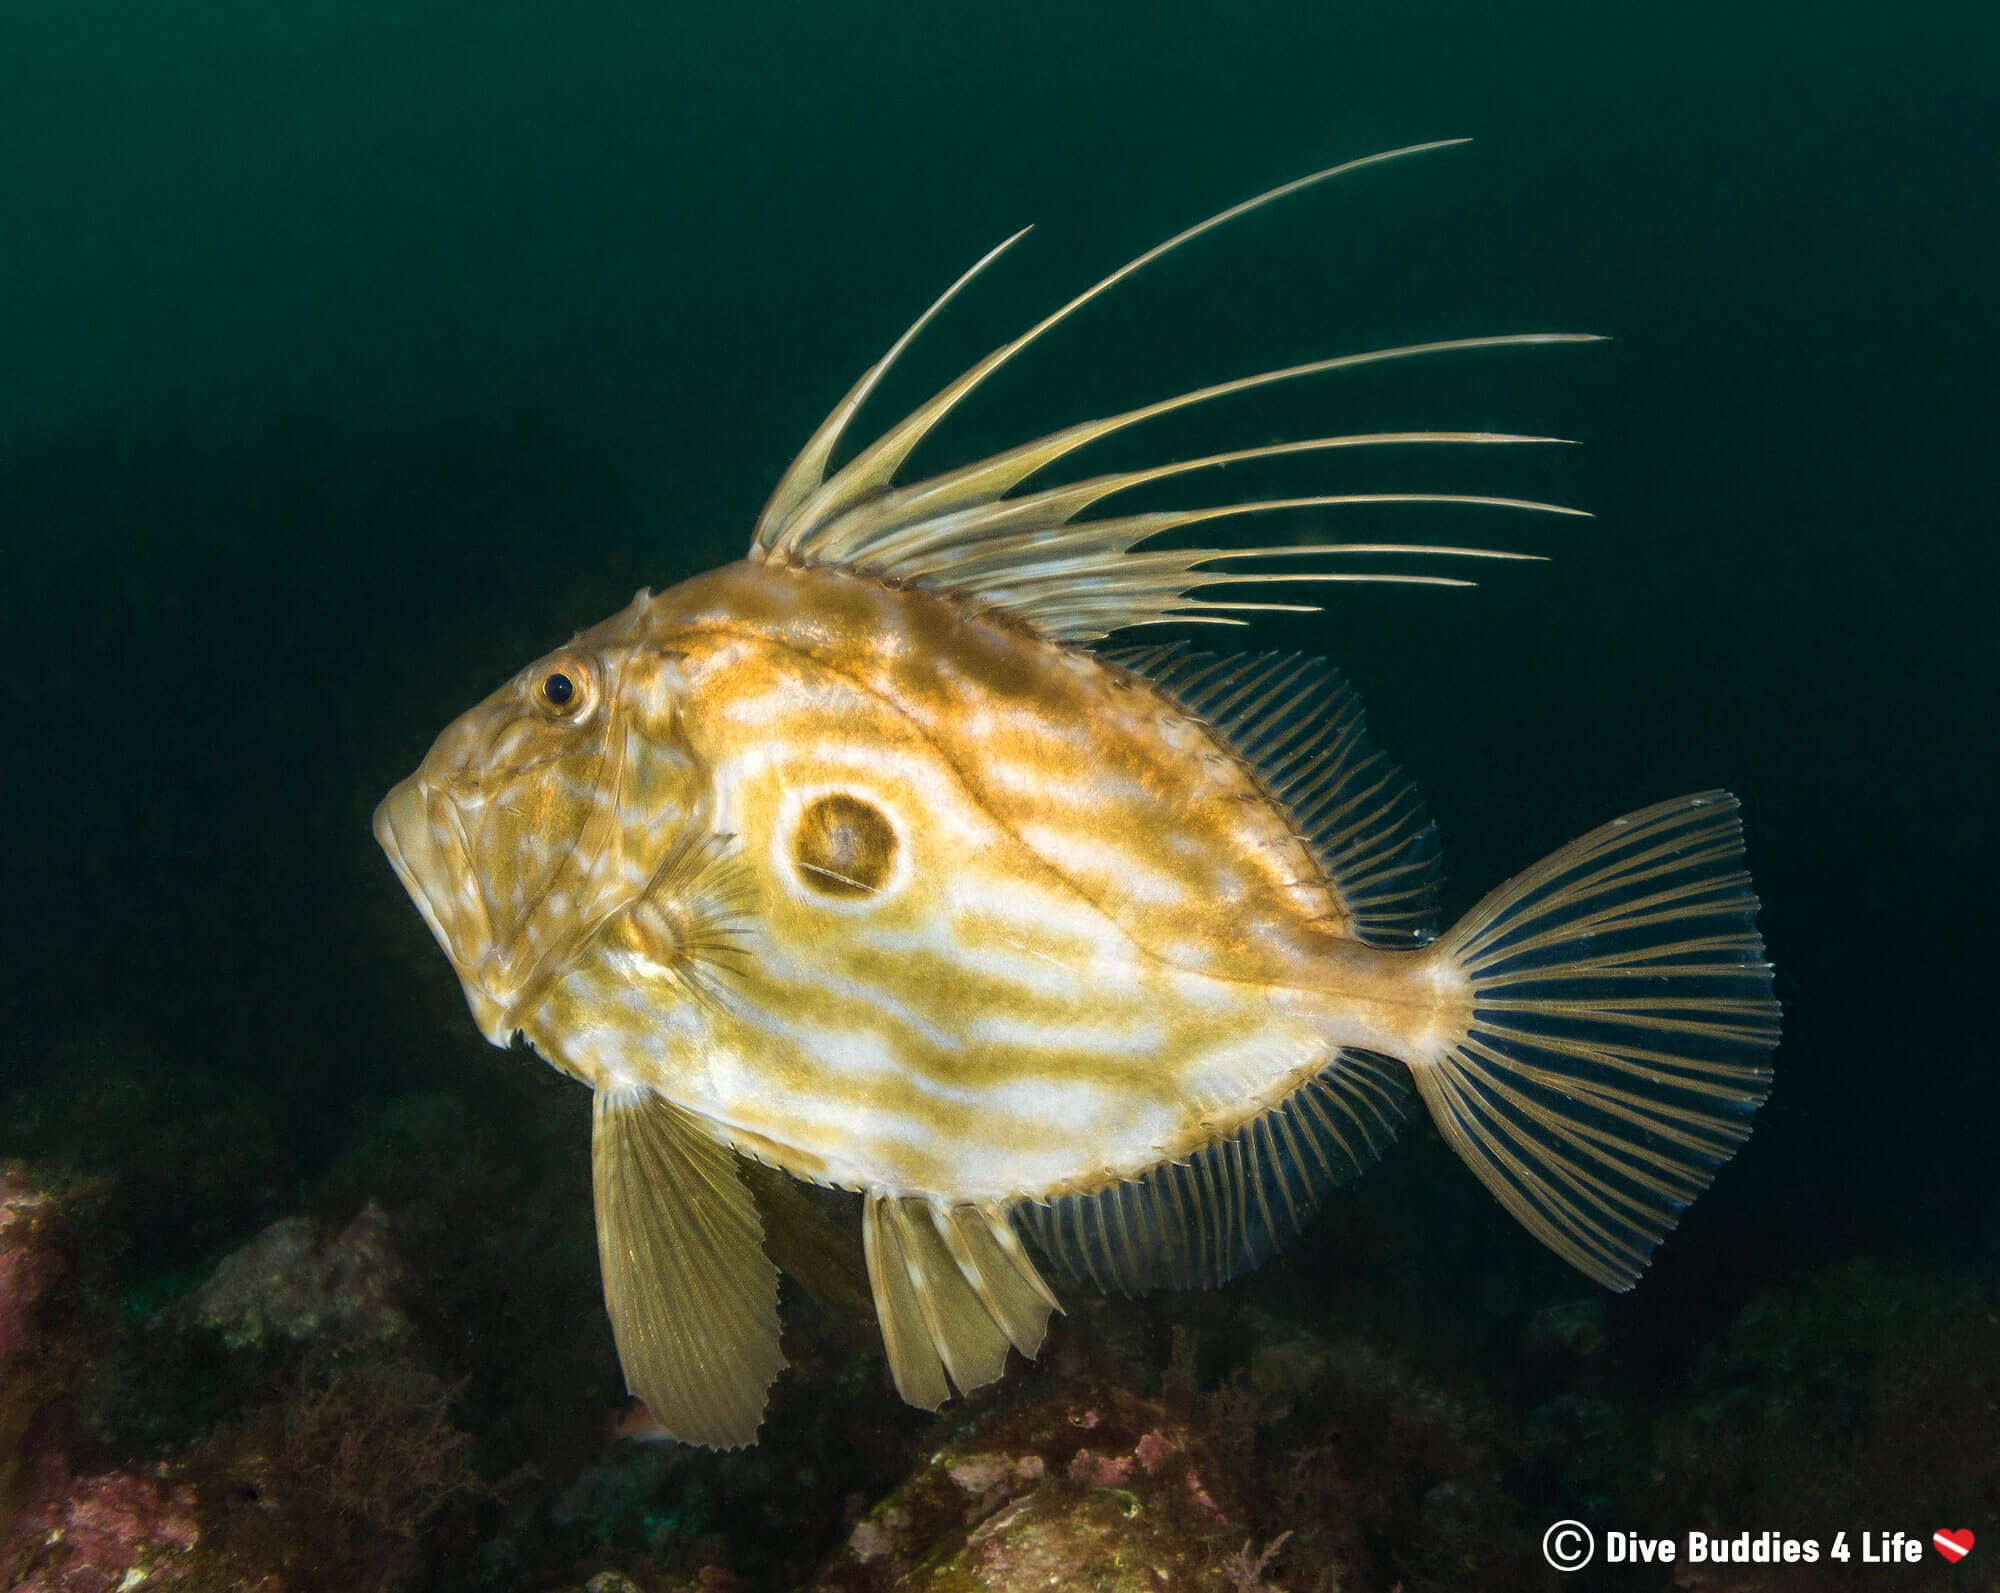 John Dory Swimming Away from a Scuba Diver in Peniche, Portugal